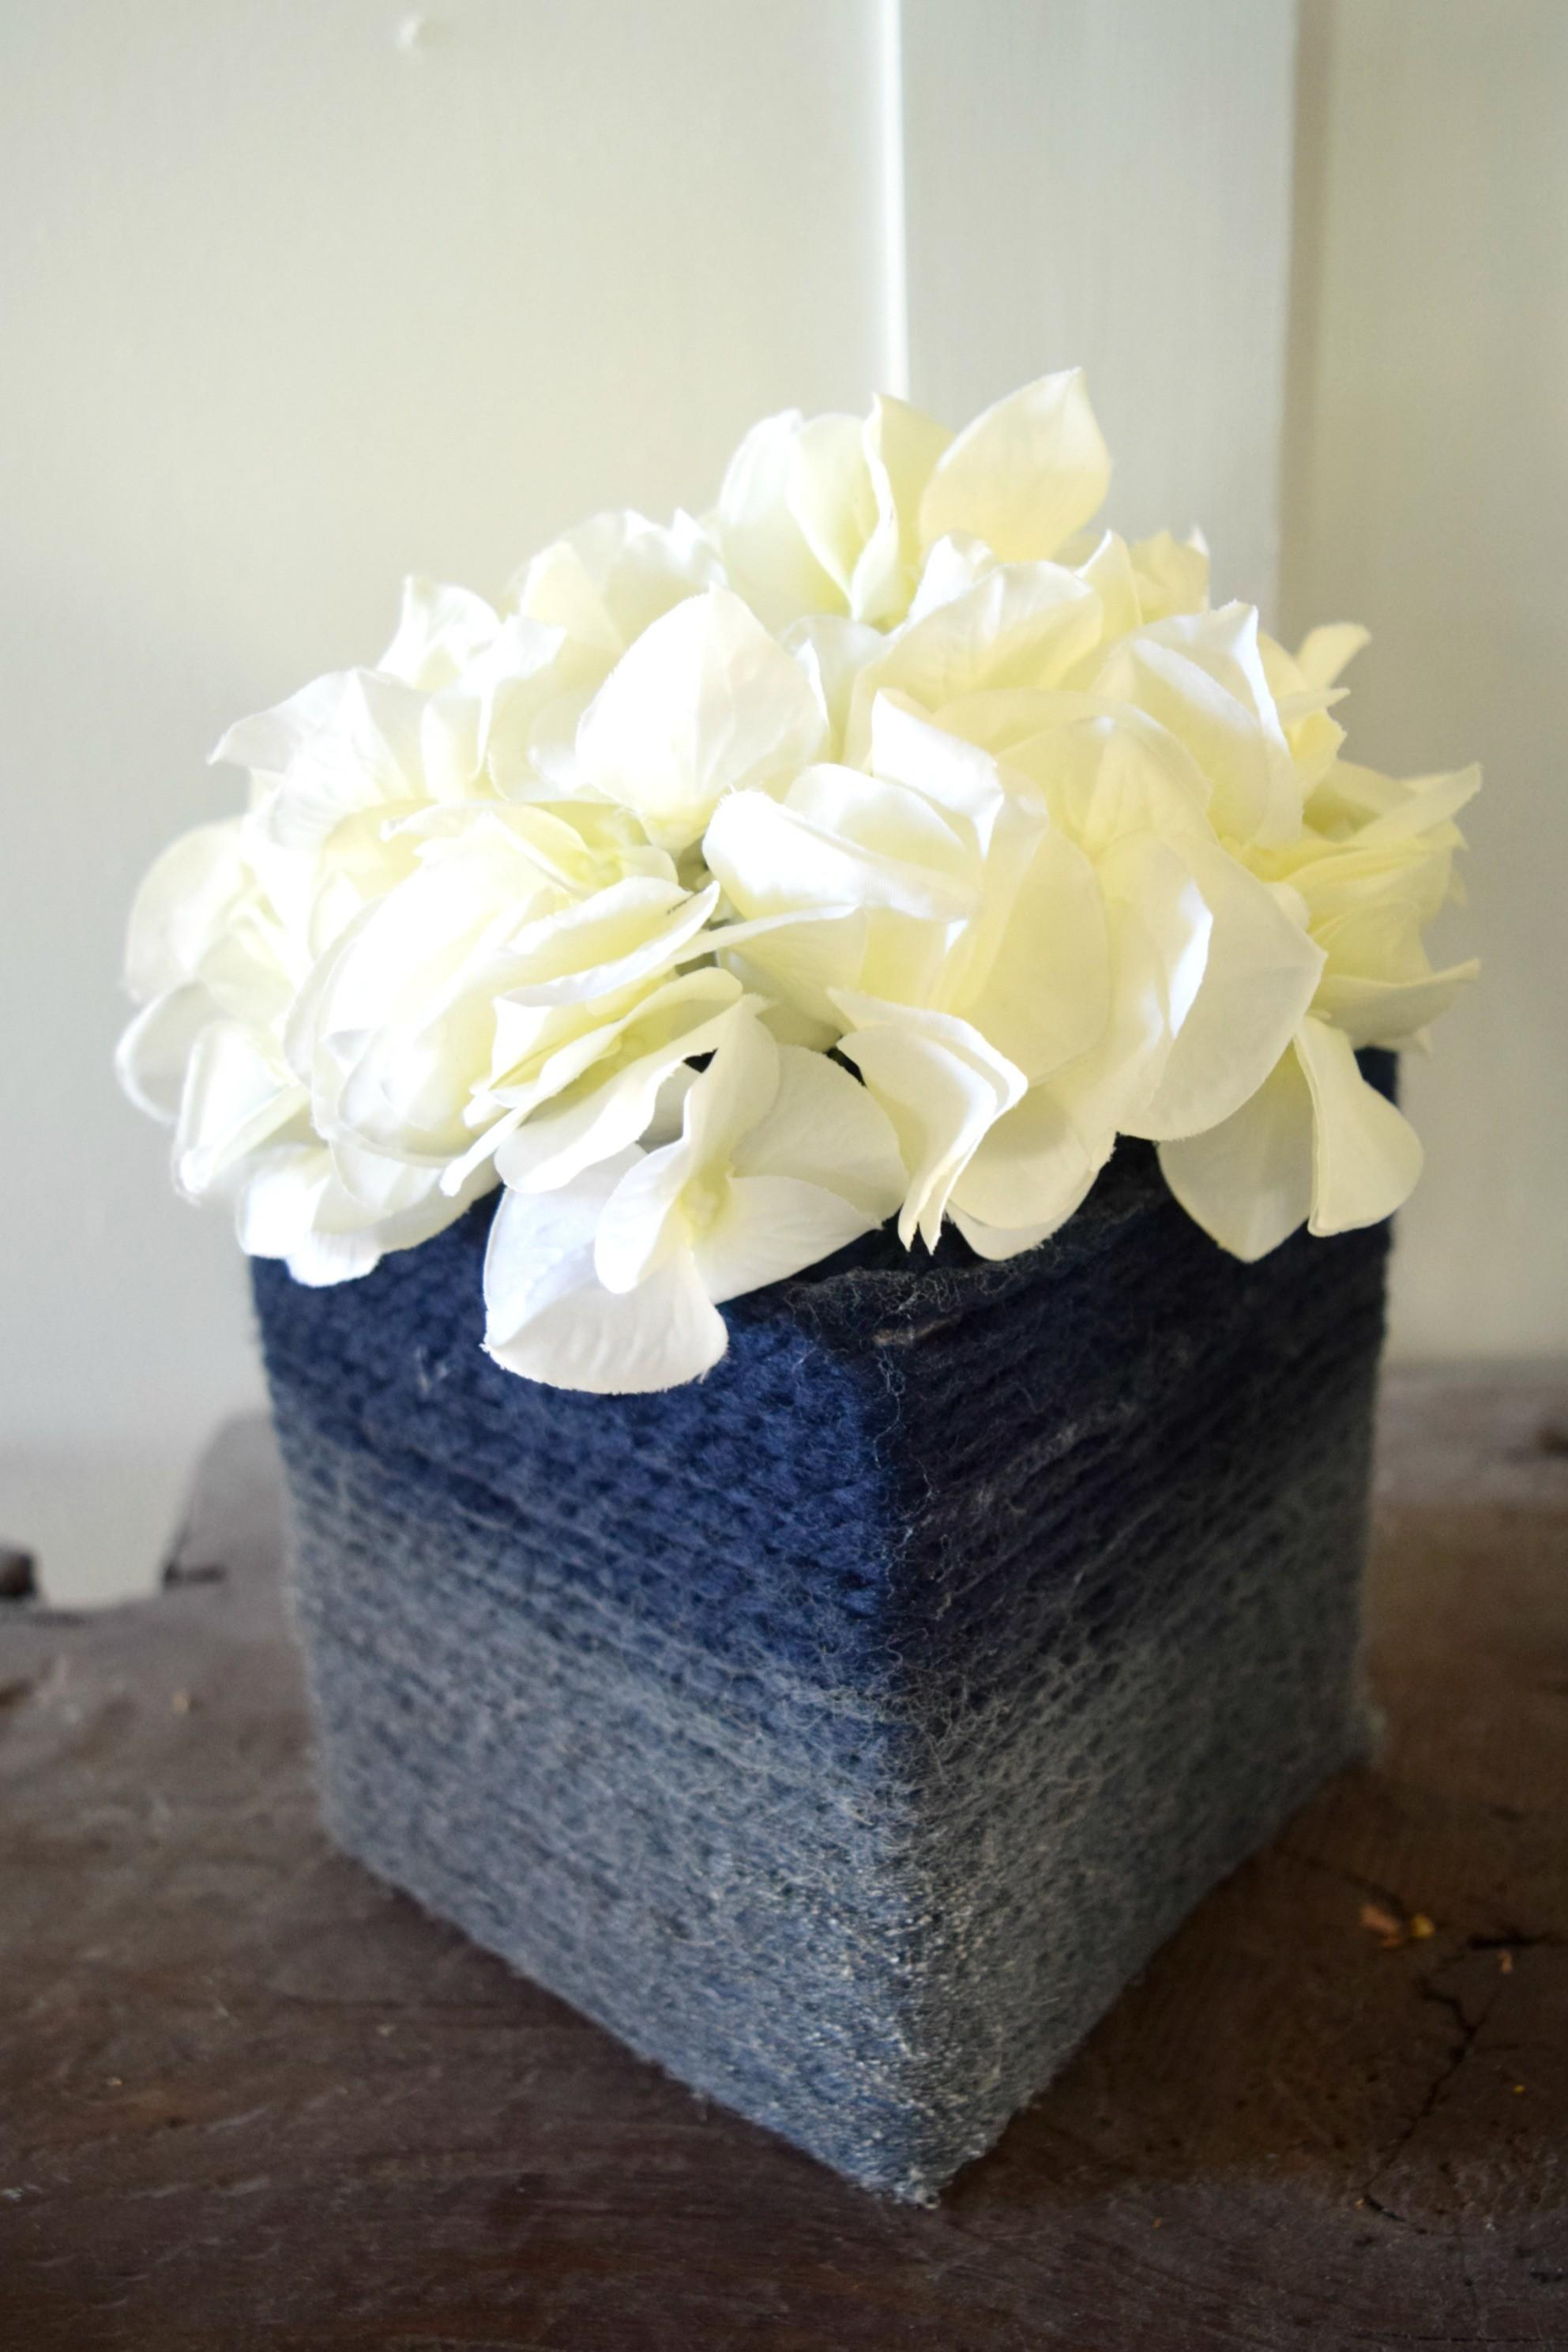 Diy Cardboard Tissue Box Turned Into Vase Easy Craft Idea